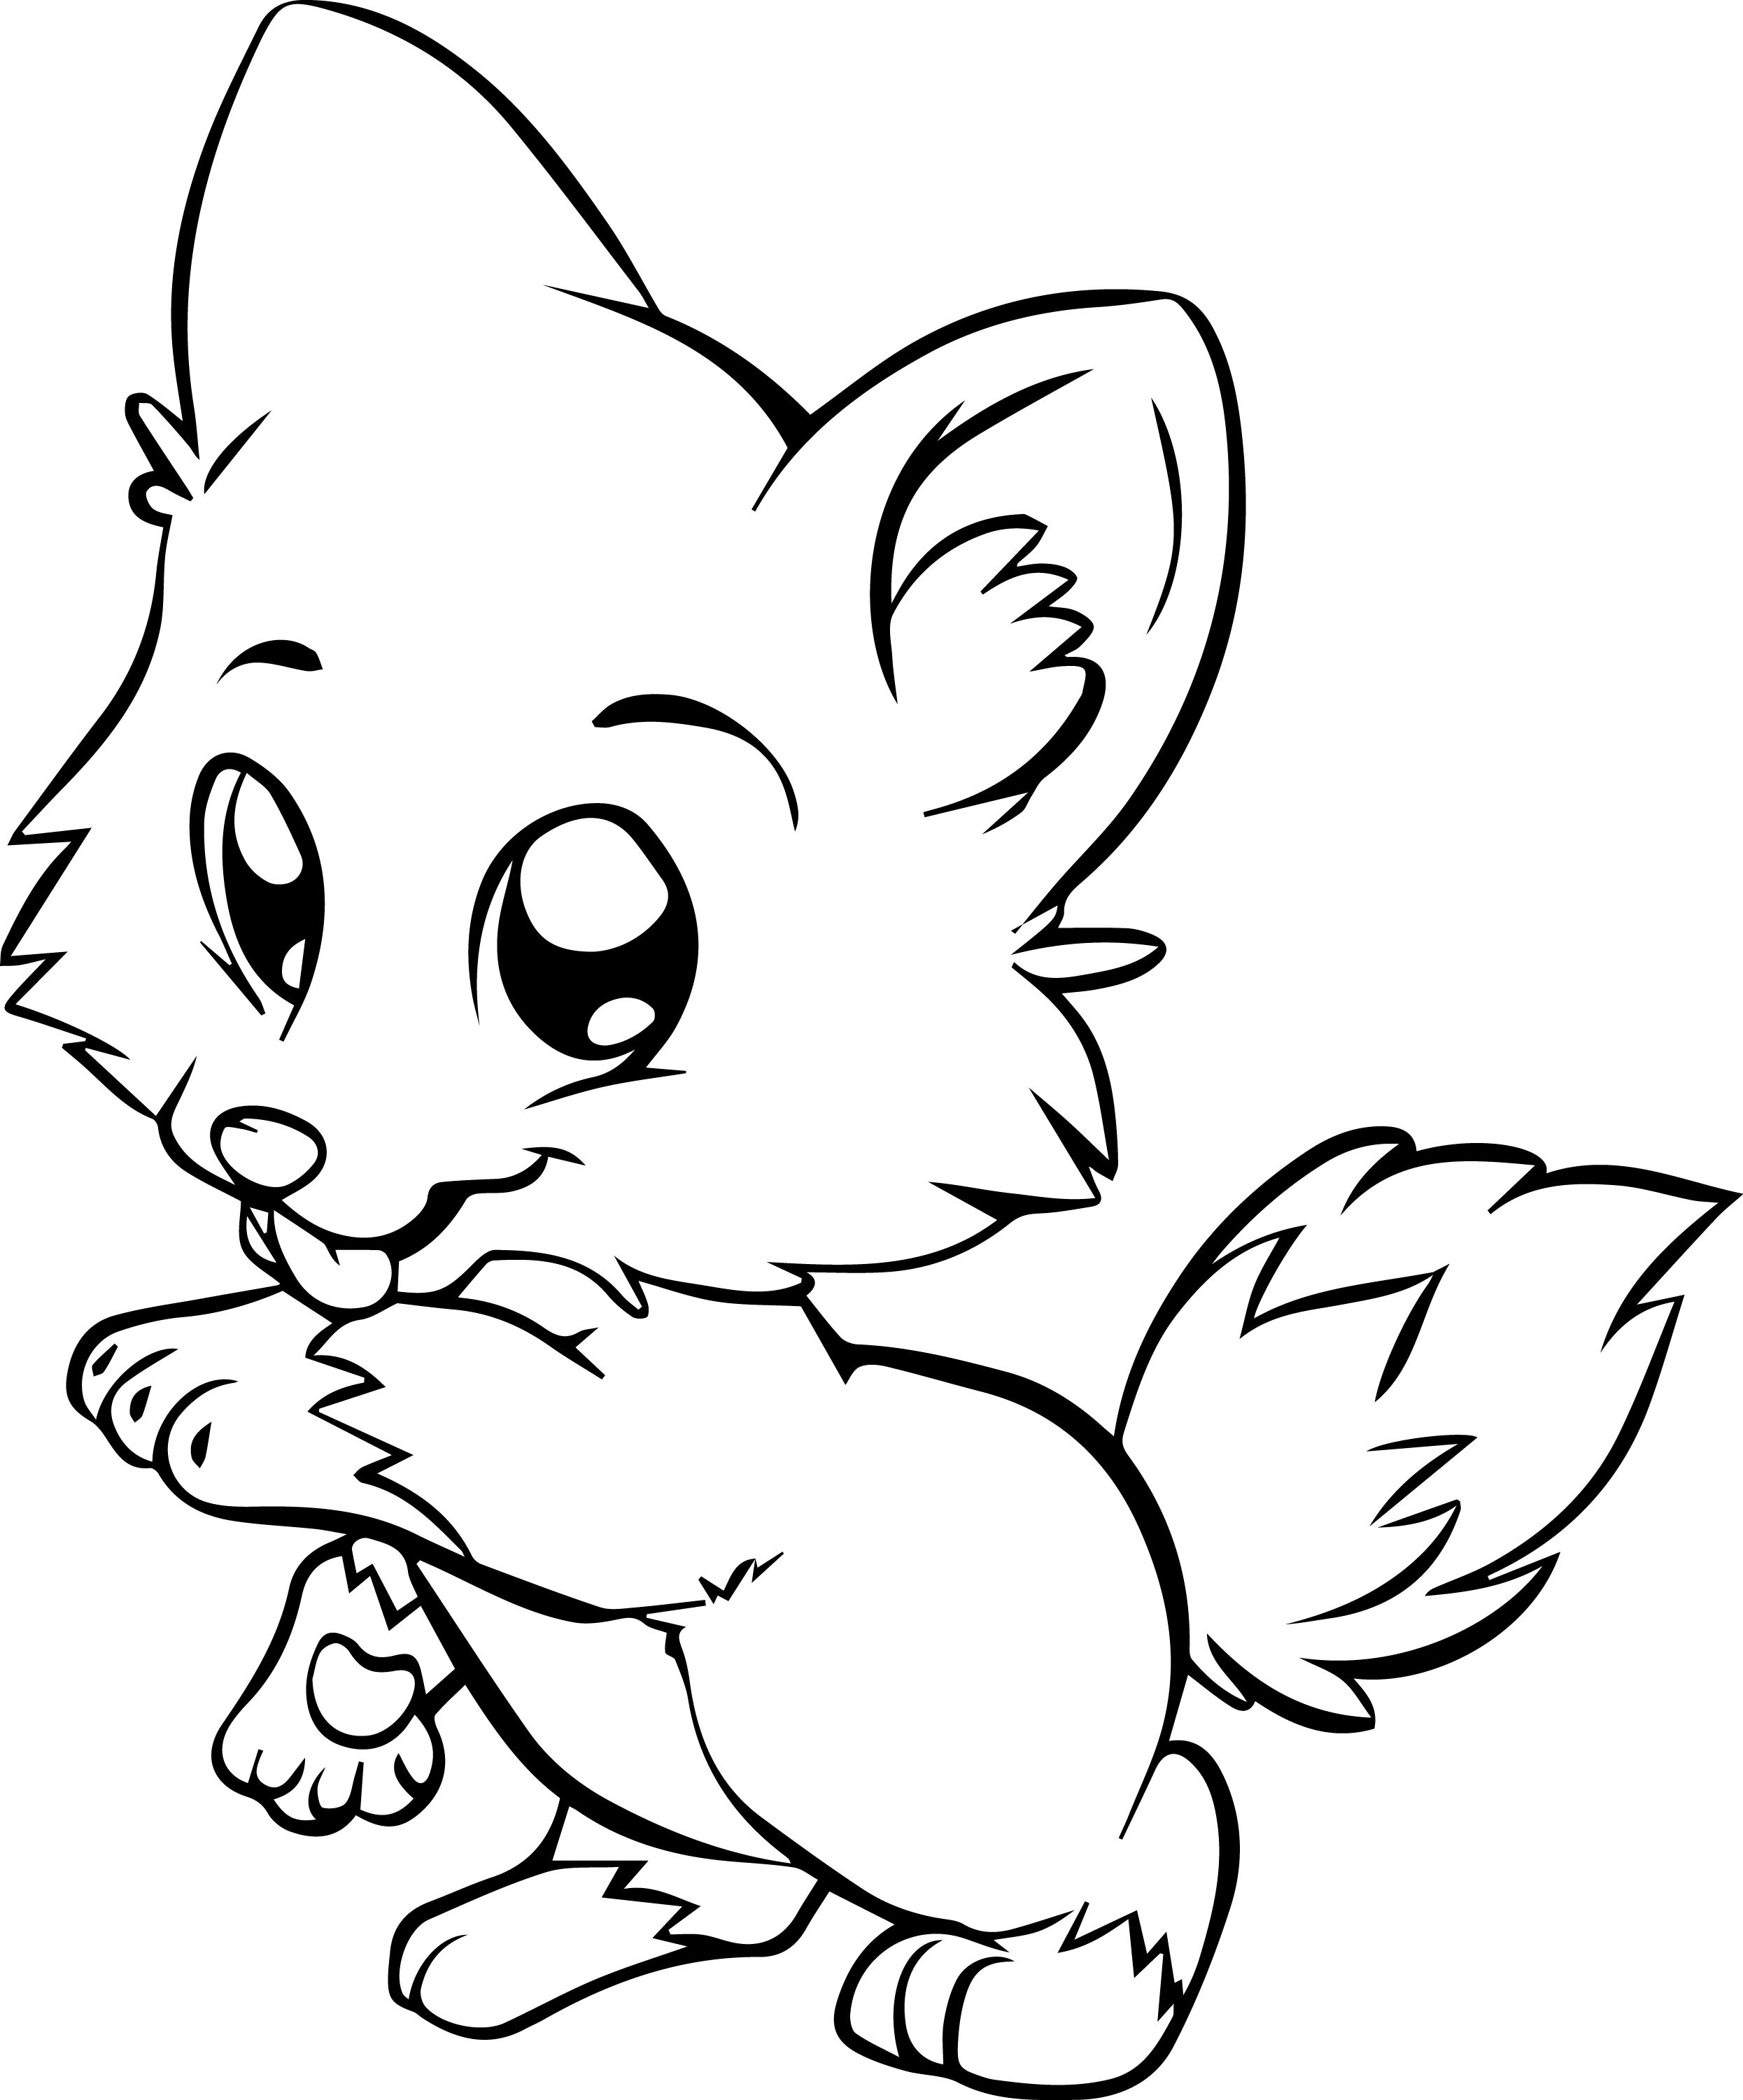 Dog Coloring Pages For Preschoolers At Getdrawings Com Free For